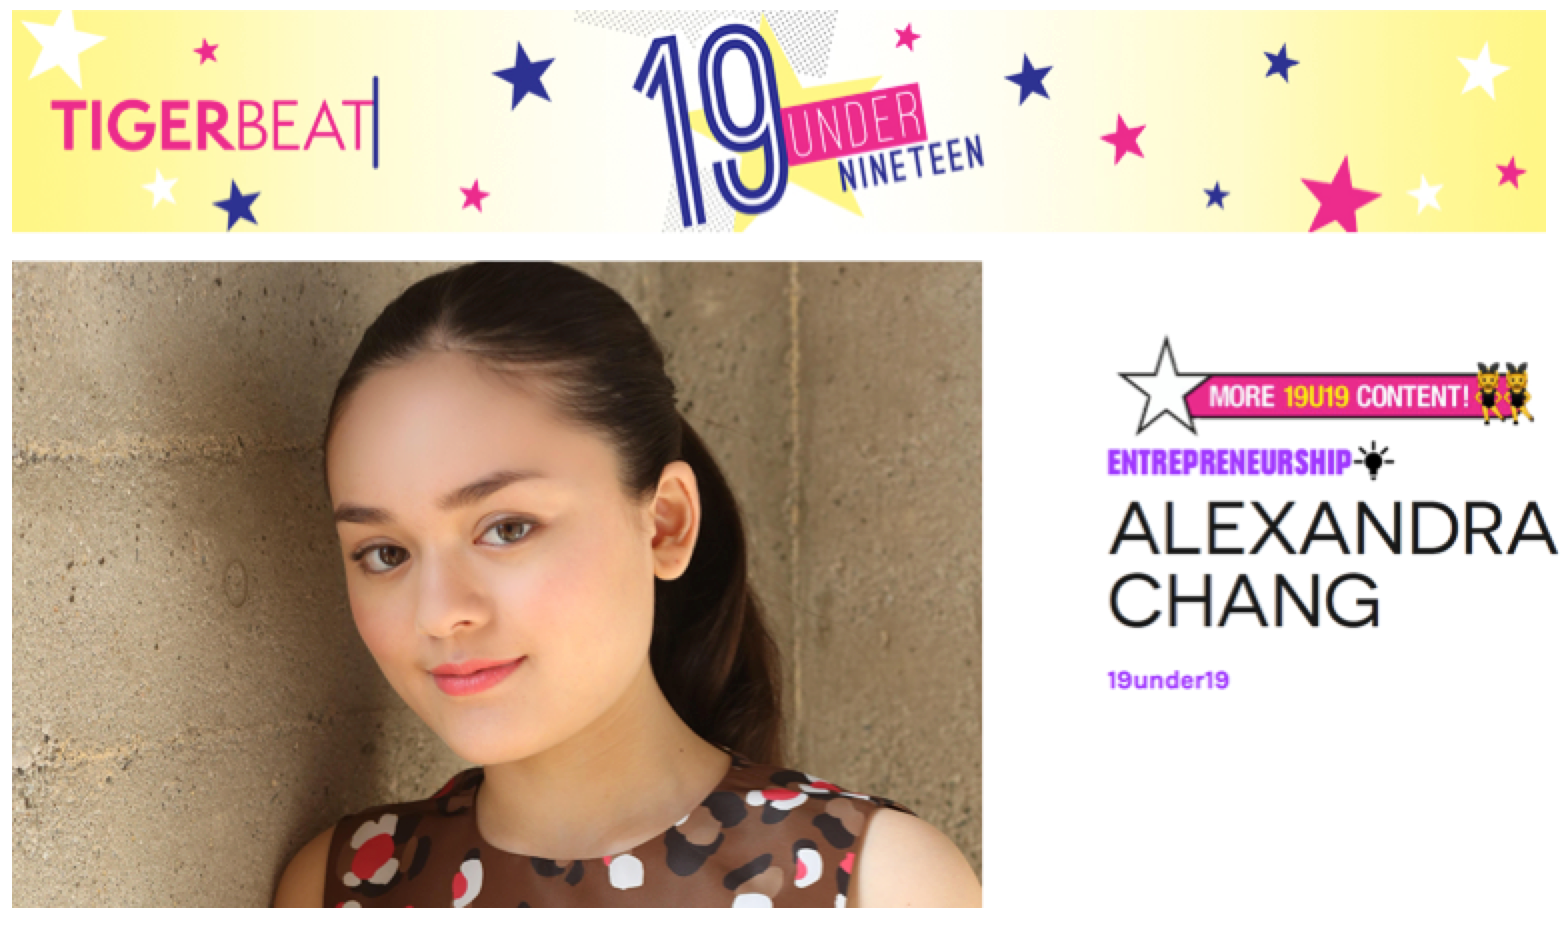 Alexandra was featured in the October 2016 issue and was nominated under the entrepreneurship category for the 19 Under 19 Awards.